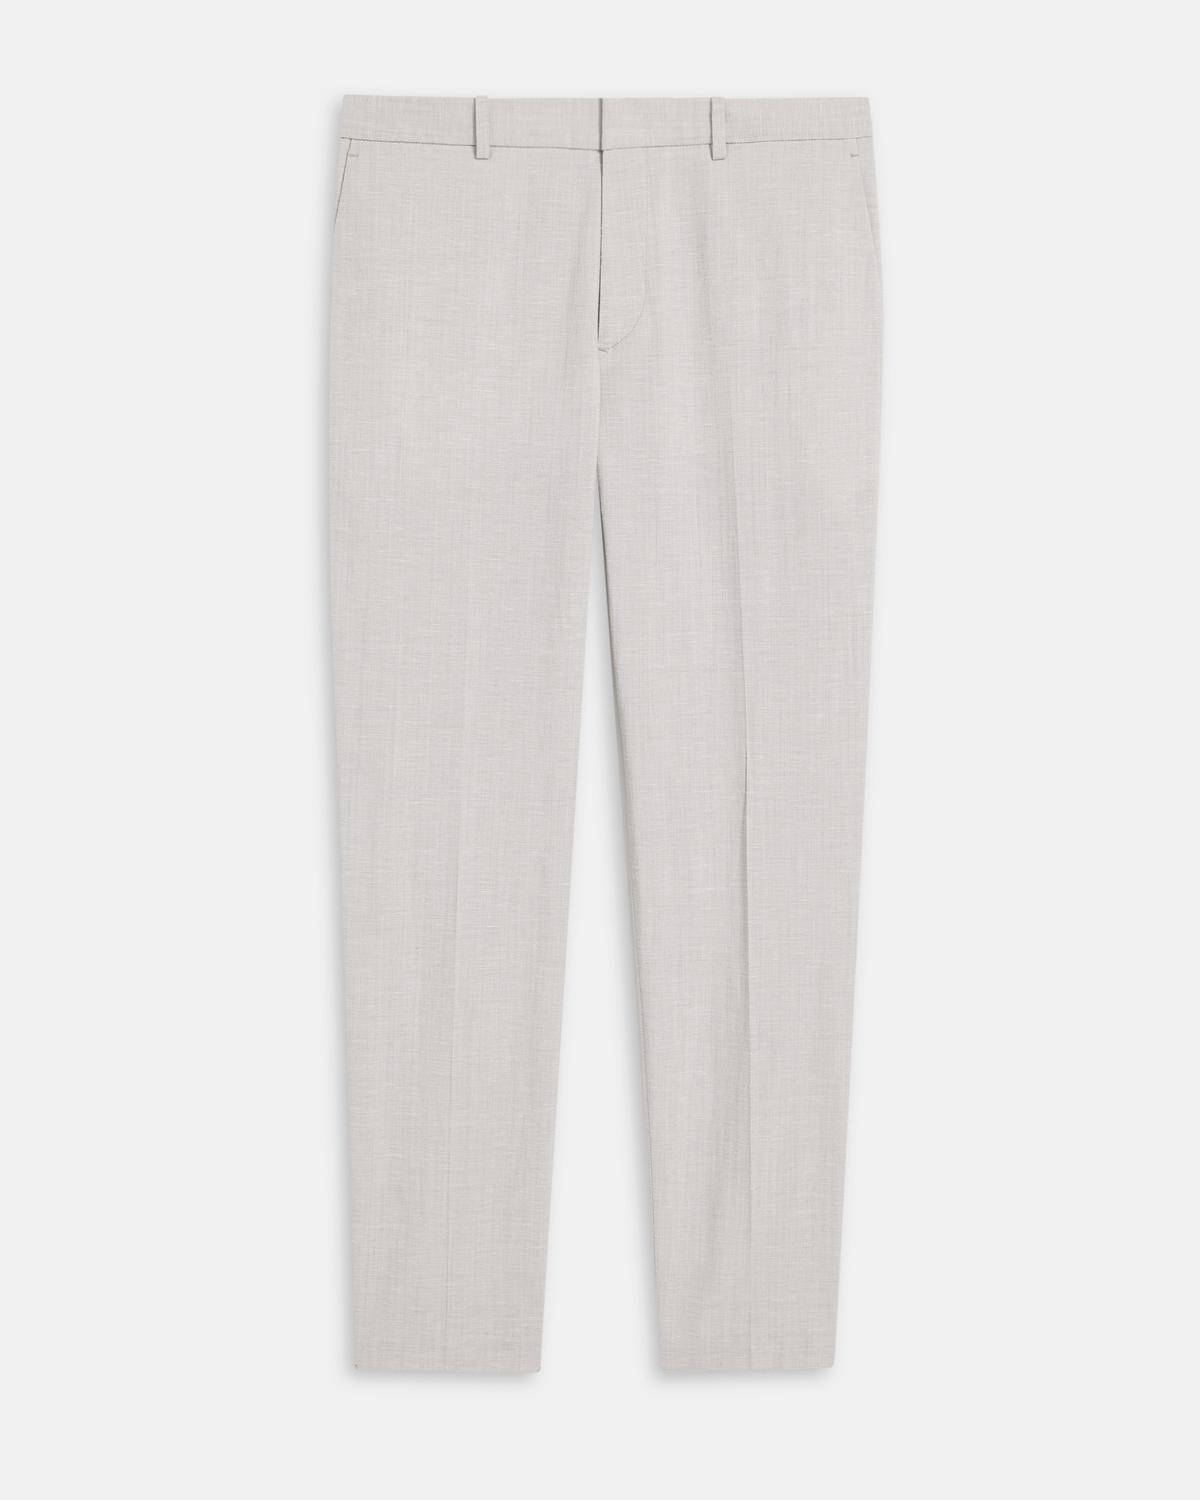 Curtis Pant in Wool Blend